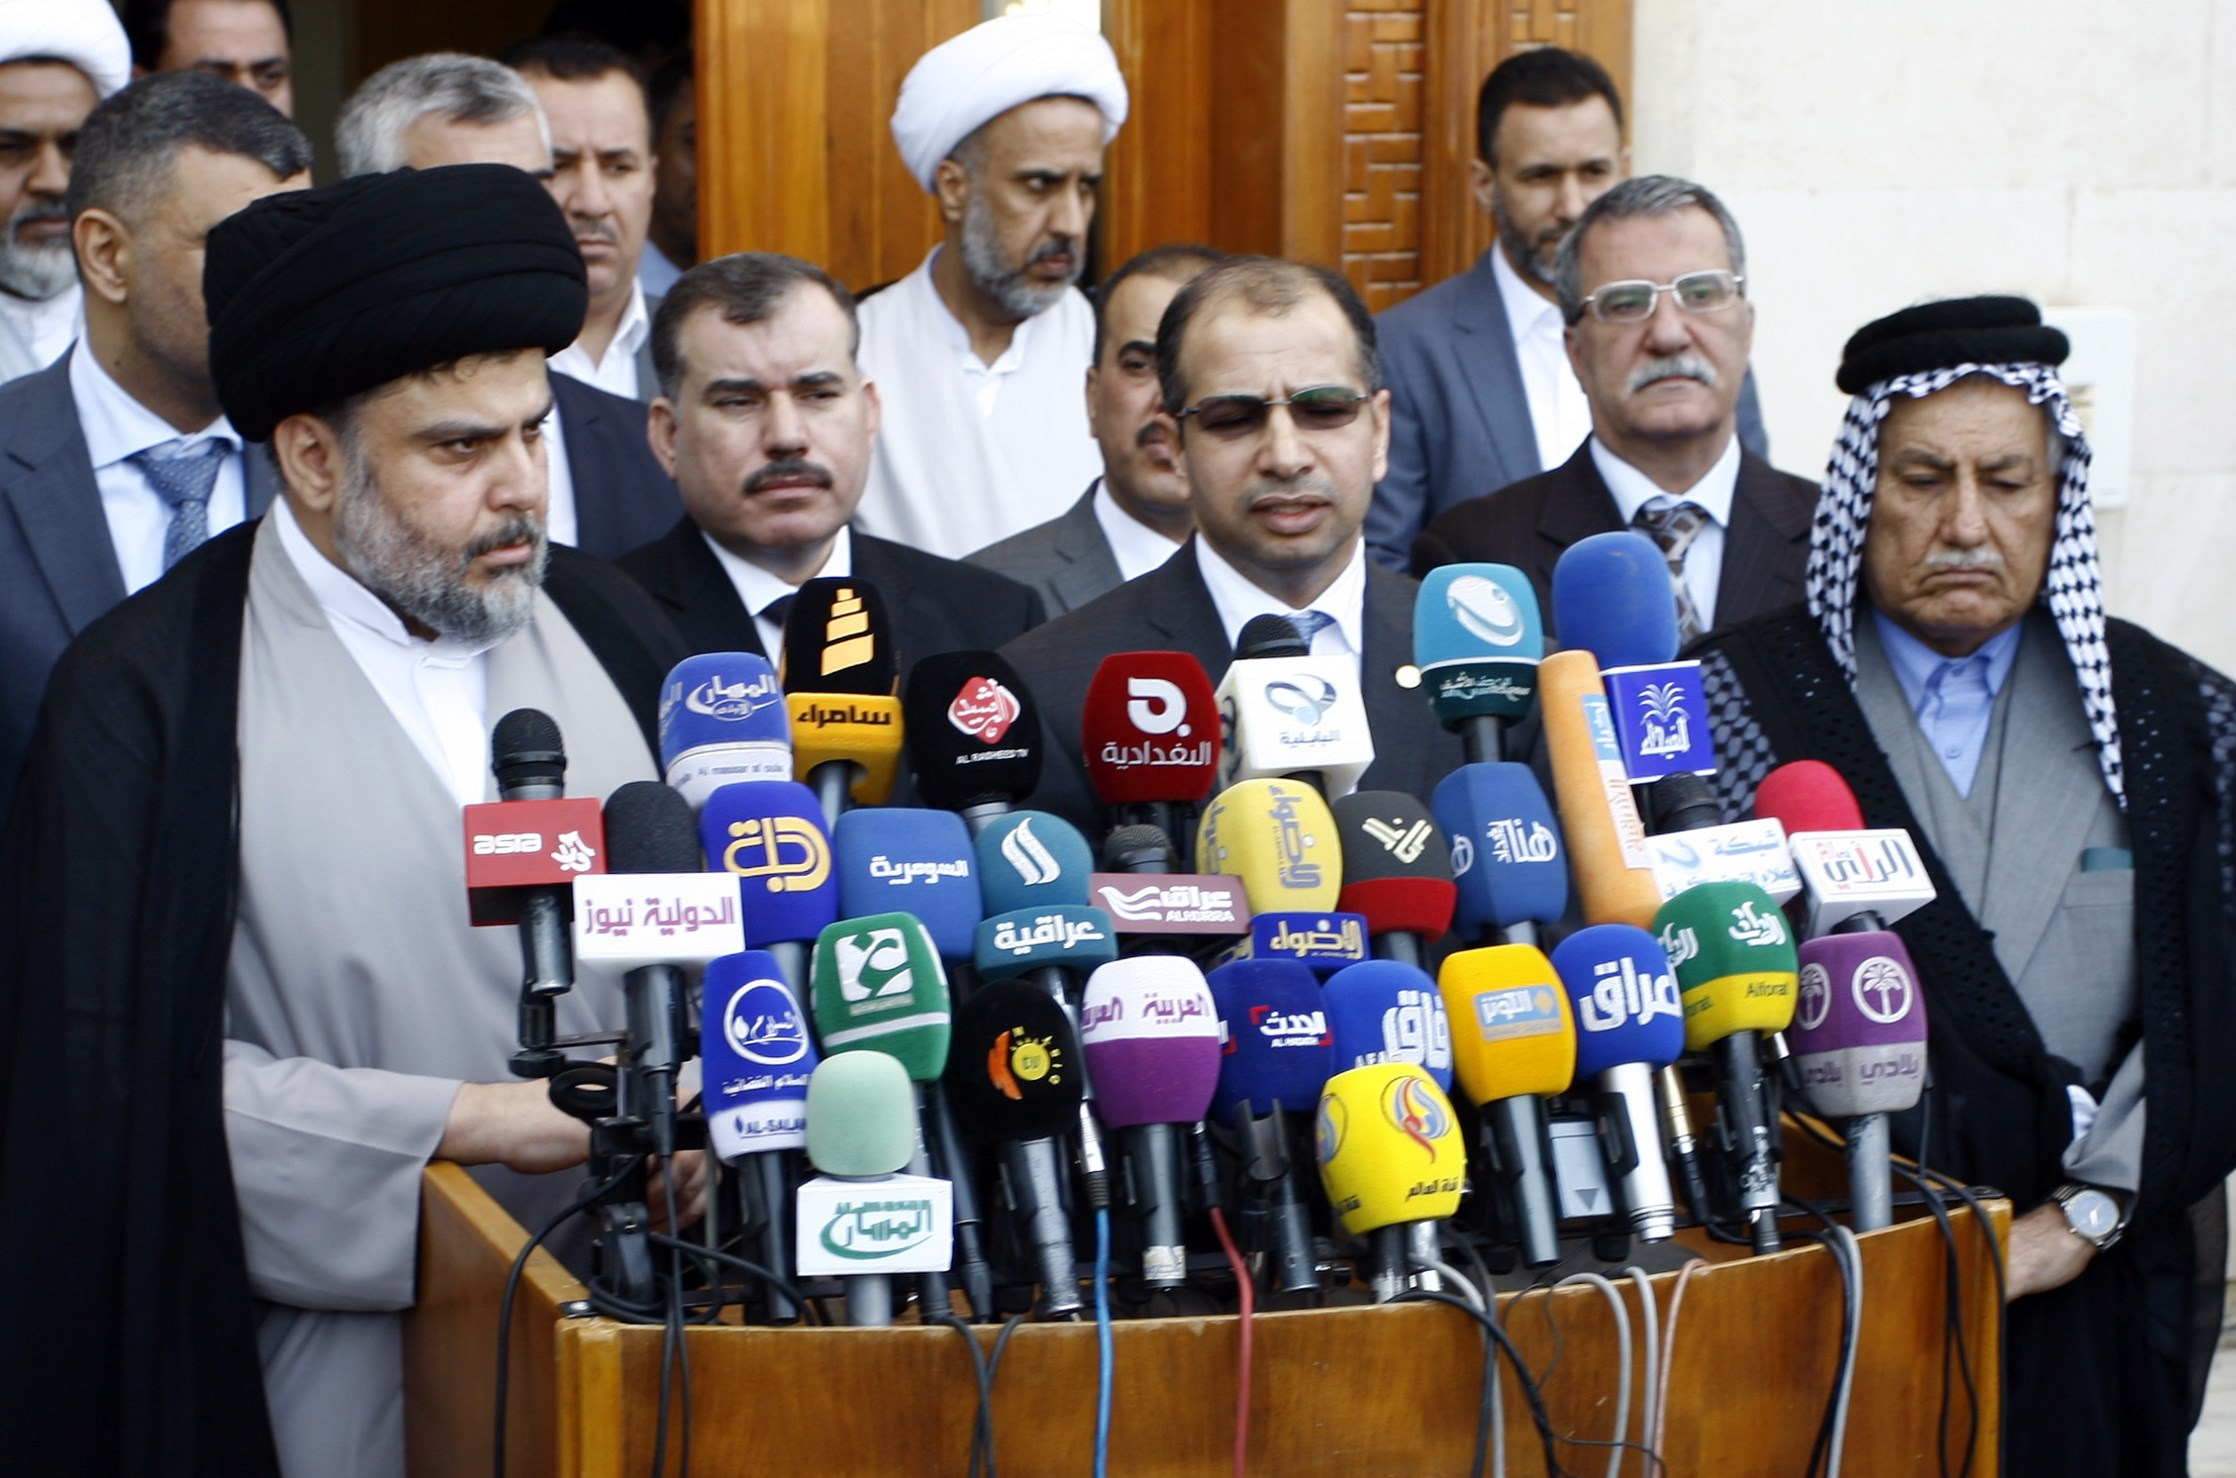 Iraqi Shiite cleric Moqtada al-Sadr (left) speaks to the press after a meeting with Salim al-Jabouri (second from right), the Parliament's speaker, alongside other parliament Sunni members on April 5, 2015 in the holy city of Najaf. (HAIDAR HAMDANI/AFP/Getty Images)